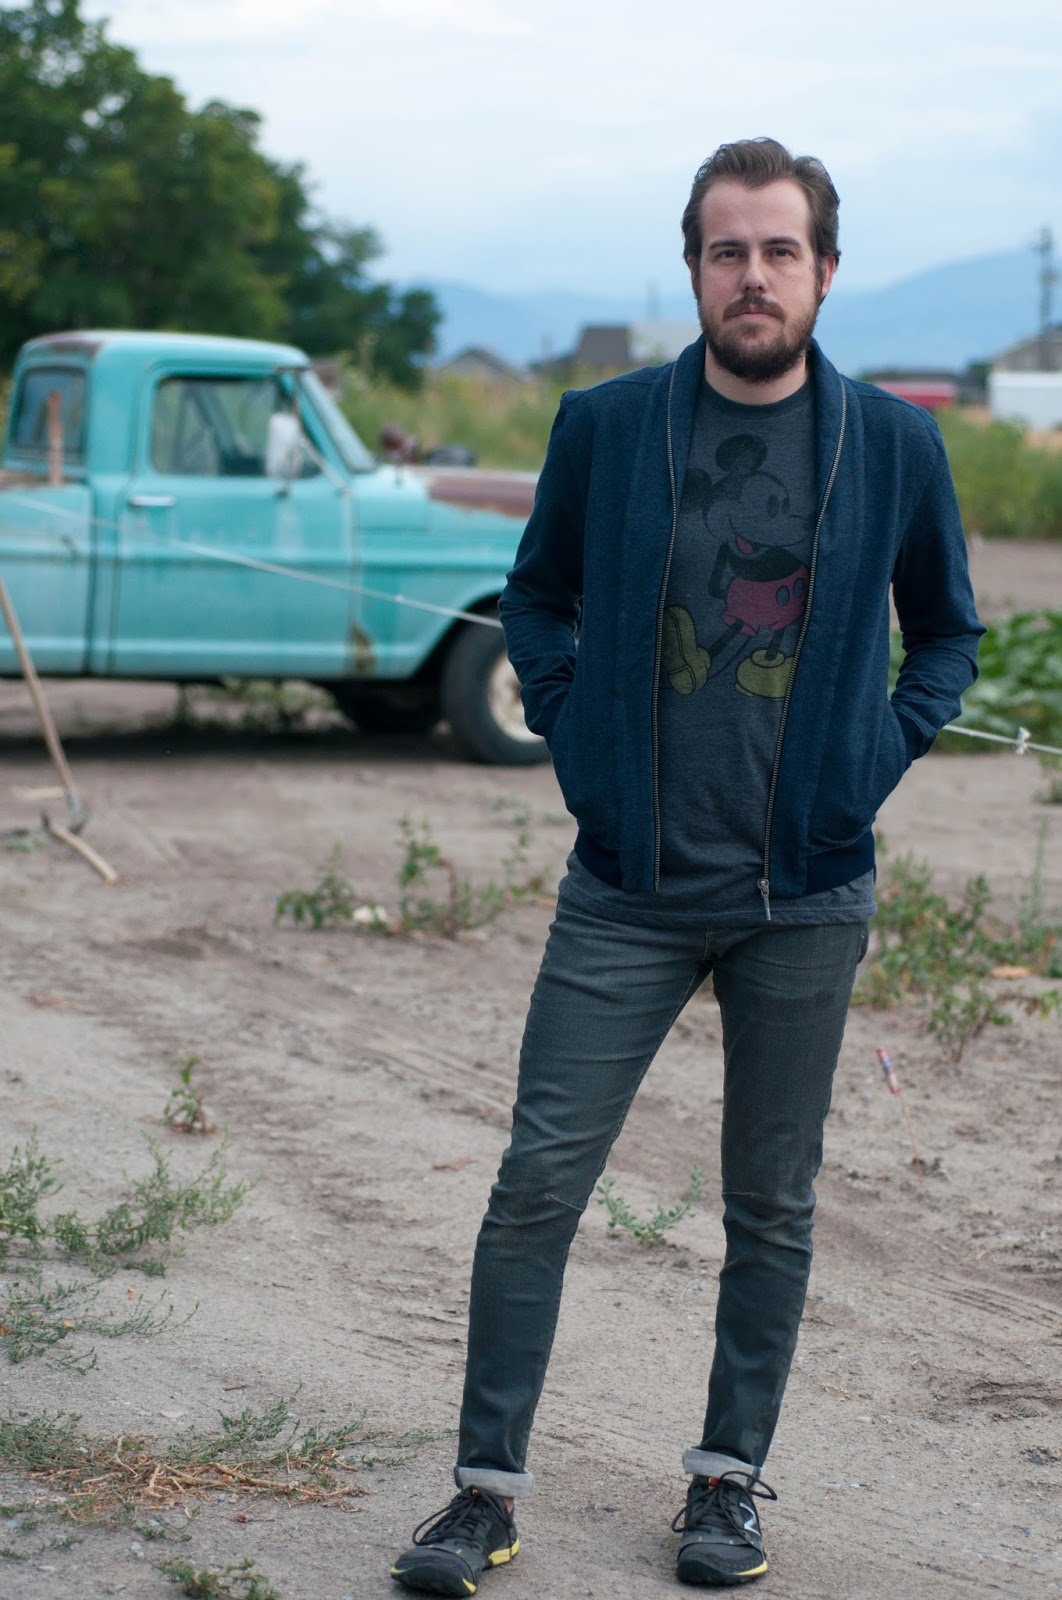 mens style blog, mens fashion blog, ootd, all saints cigarette jeans, new balance running shoes, mickey mouse tee